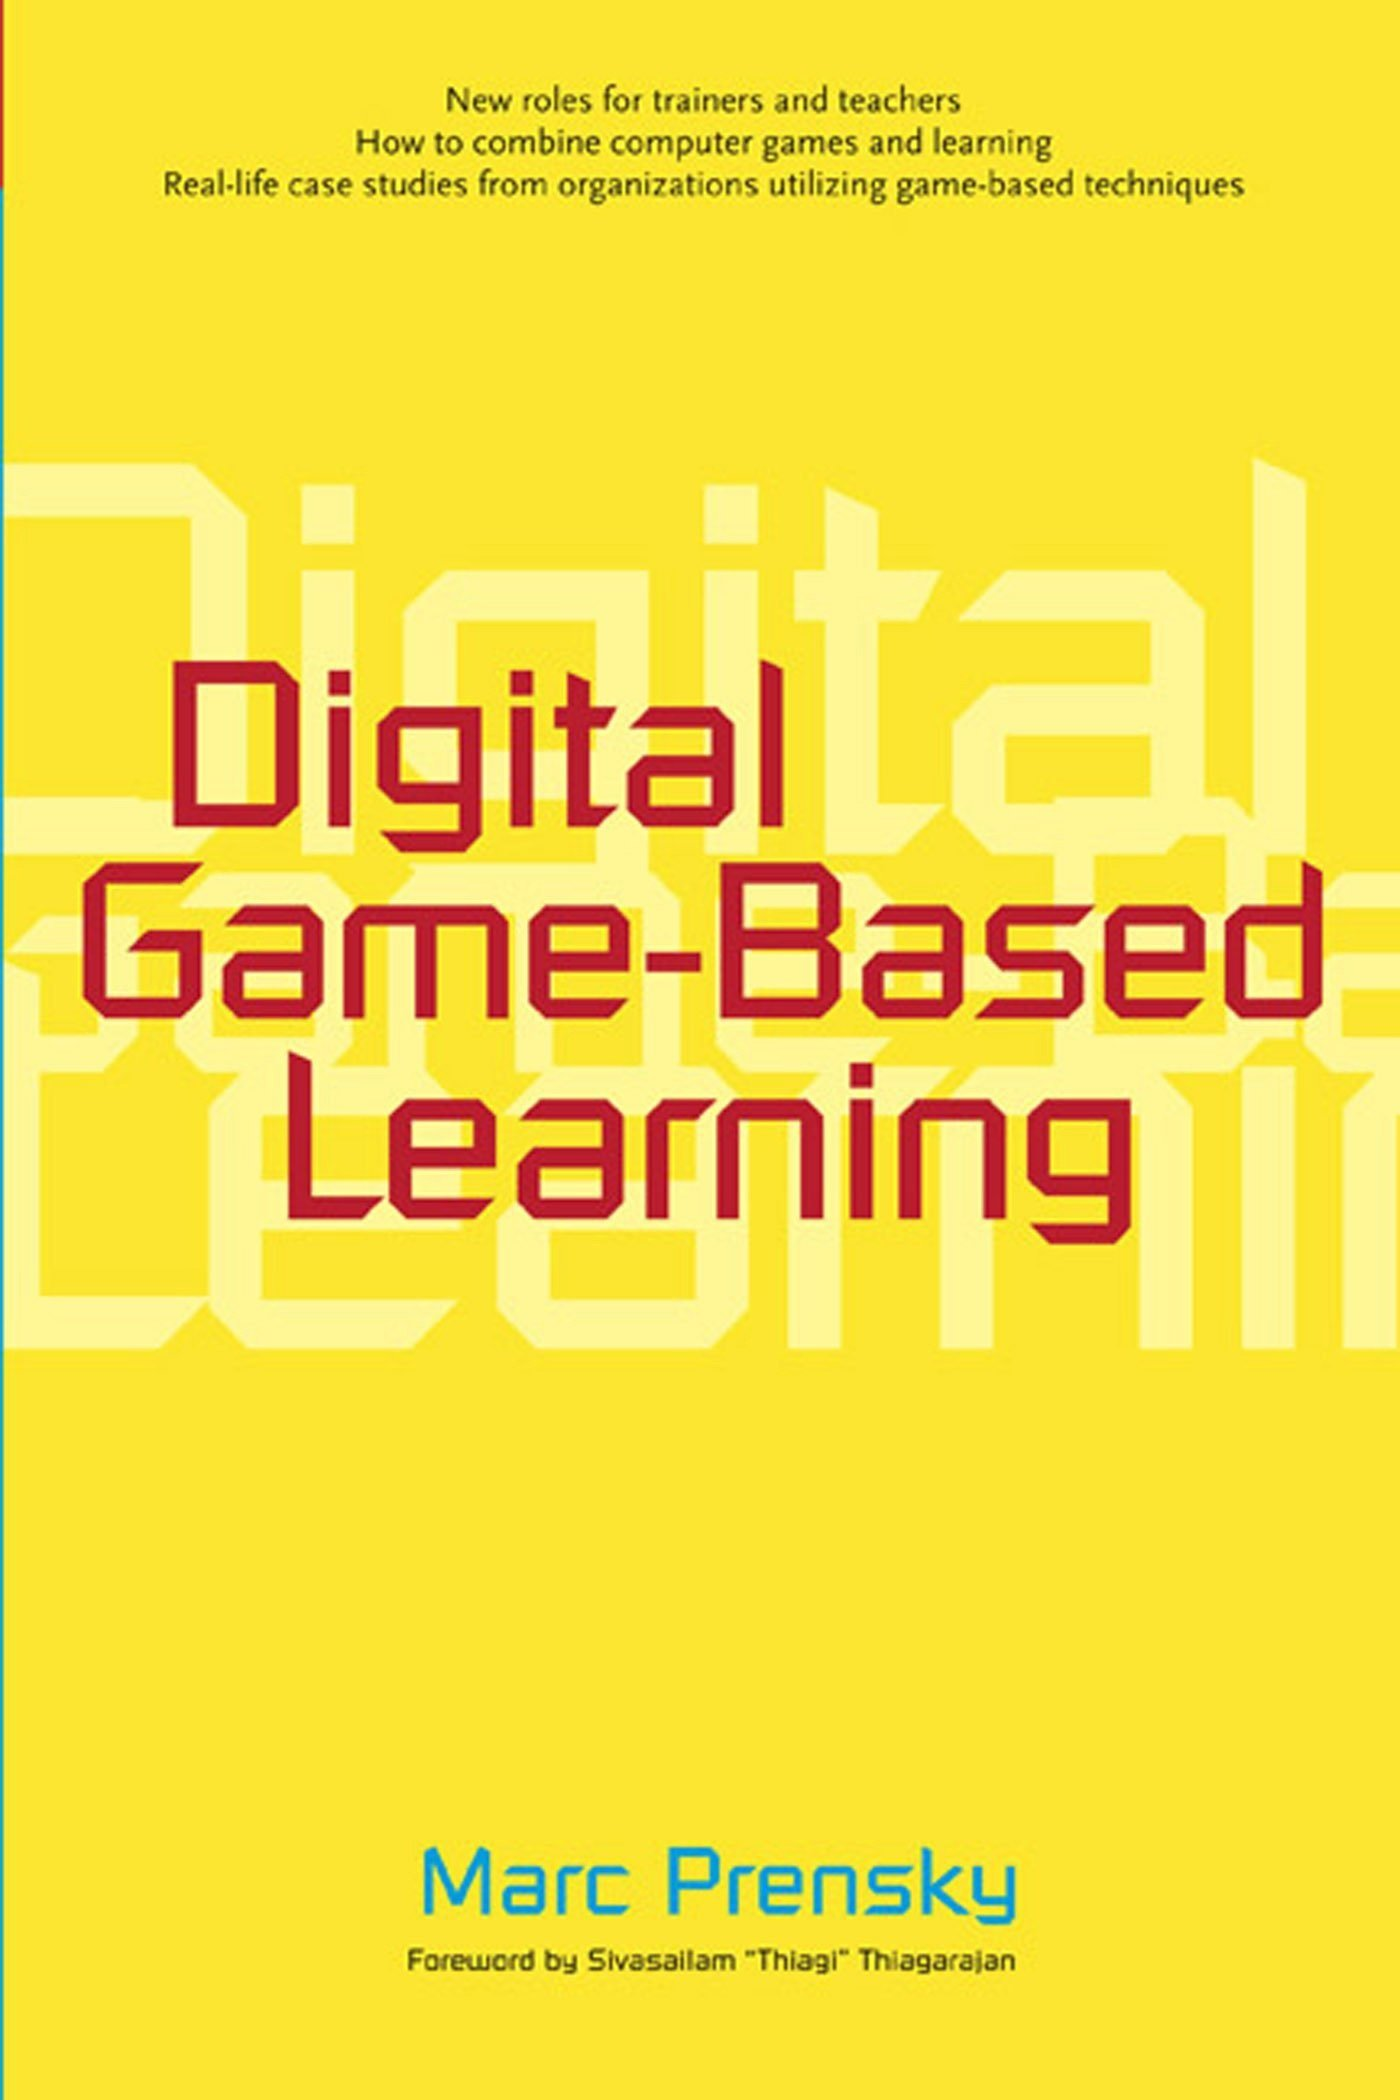 Benefits of Using Digital Game-Based Learning by Marc Prensky